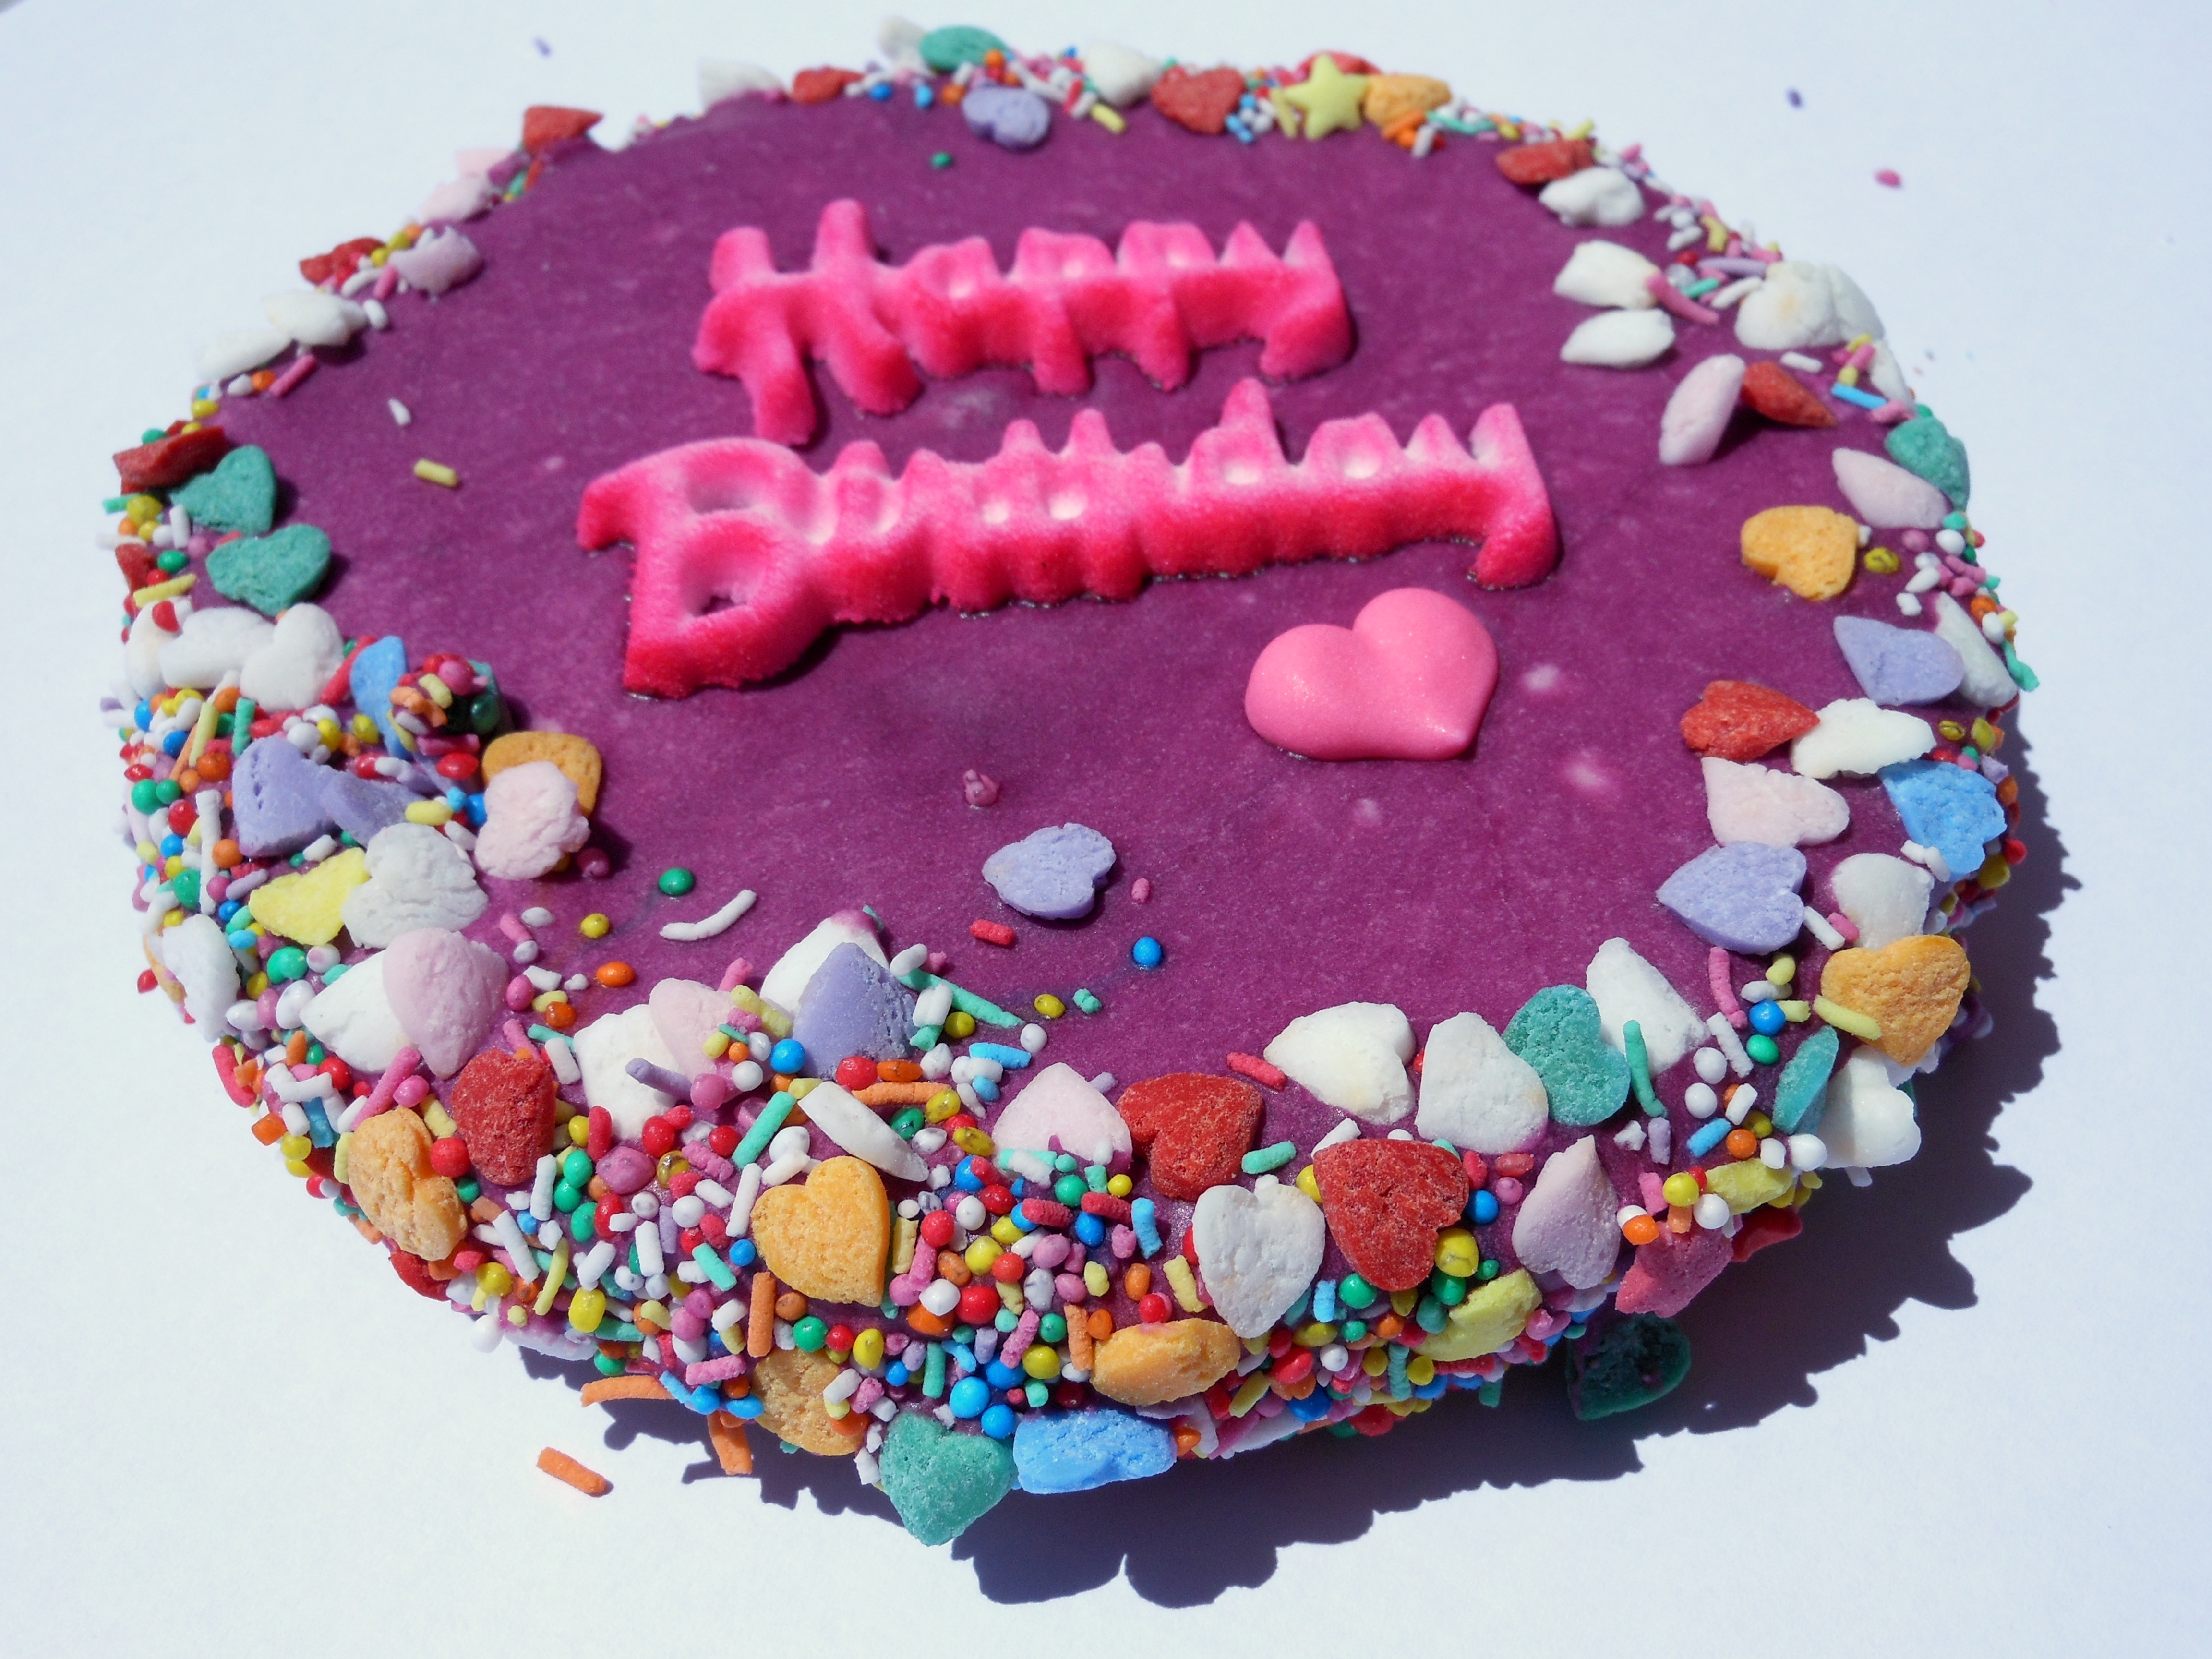 Huds-and-Toke-Yeeha-Birthday-Cake-Horse-Treats-Purple-and-Pink